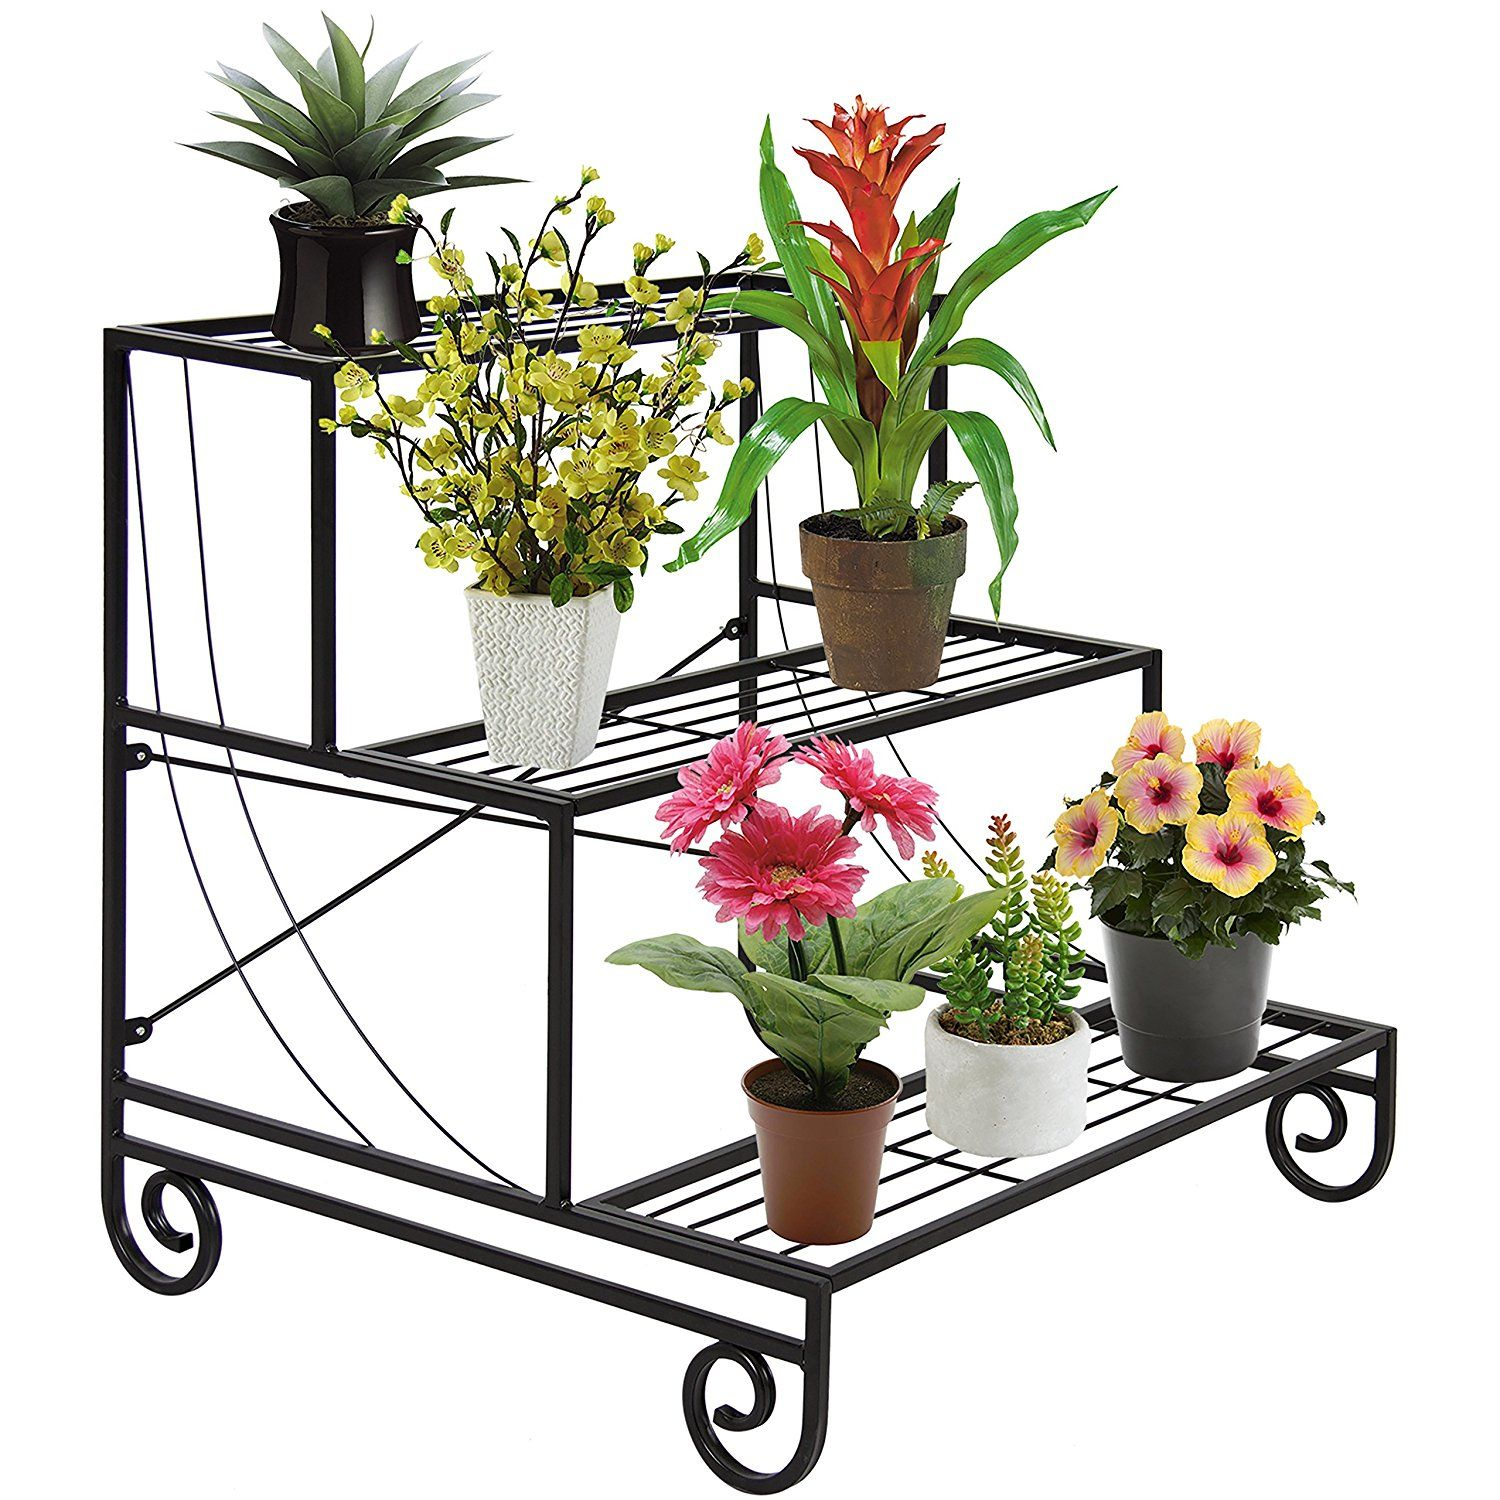 Best Choice Products 3 Tier Metal Plant Stand Decorative Planter Holder Flower Pot Shelf Rack Black *** Quickly view this special product, click the image : Planters Pots containers